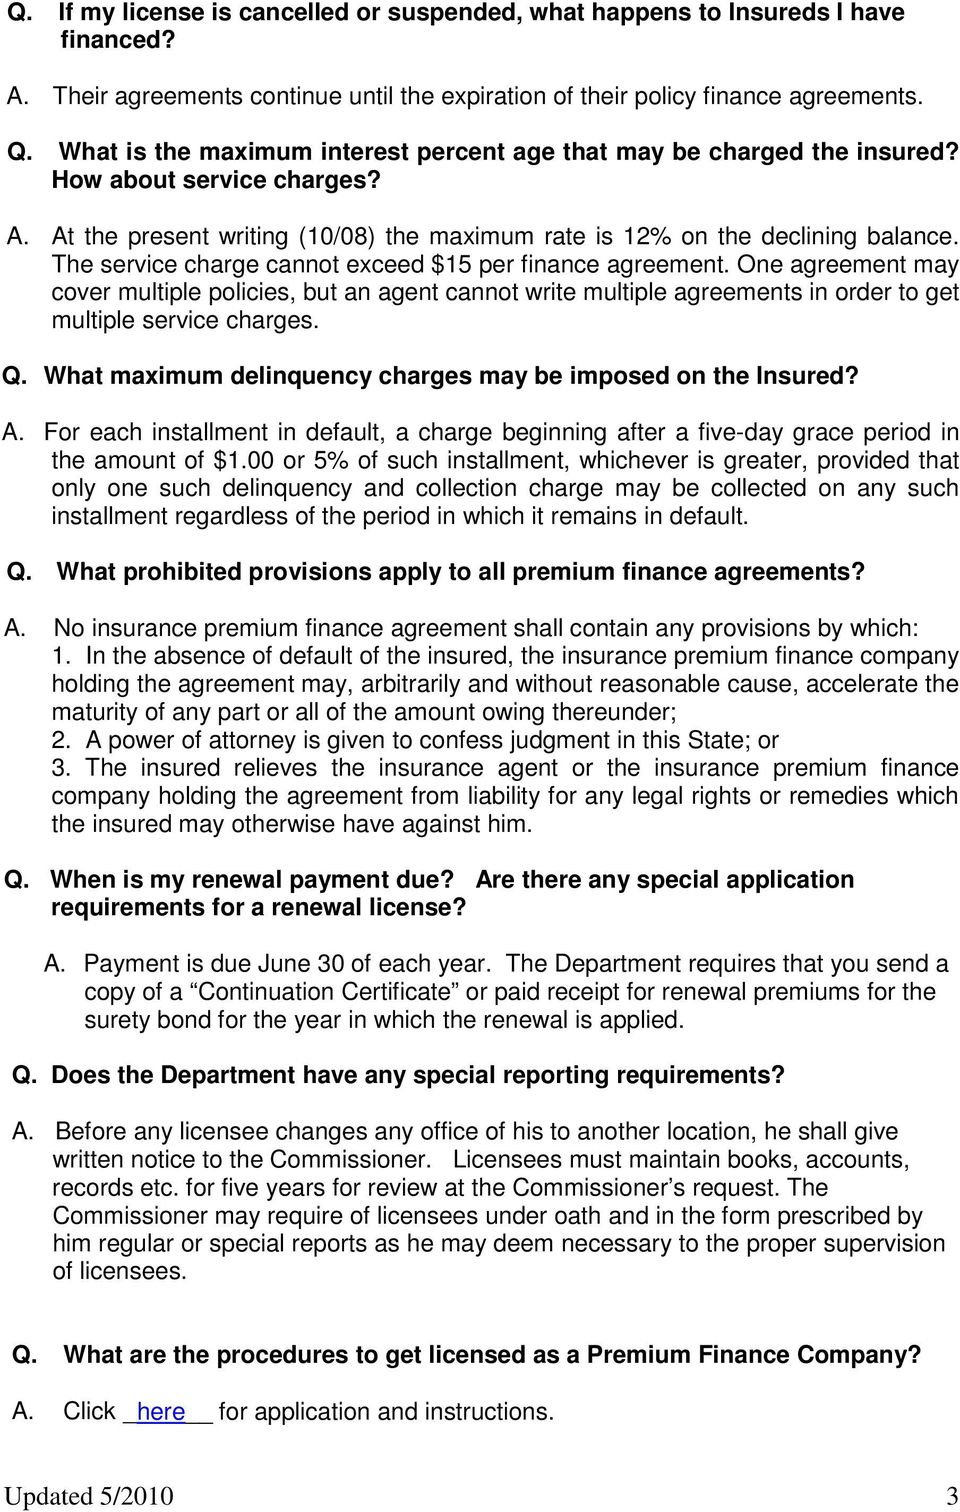 The service charge cannot exceed $15 per finance agreement. One agreement may cover multiple policies, but an agent cannot write multiple agreements in order to get multiple service charges. Q.